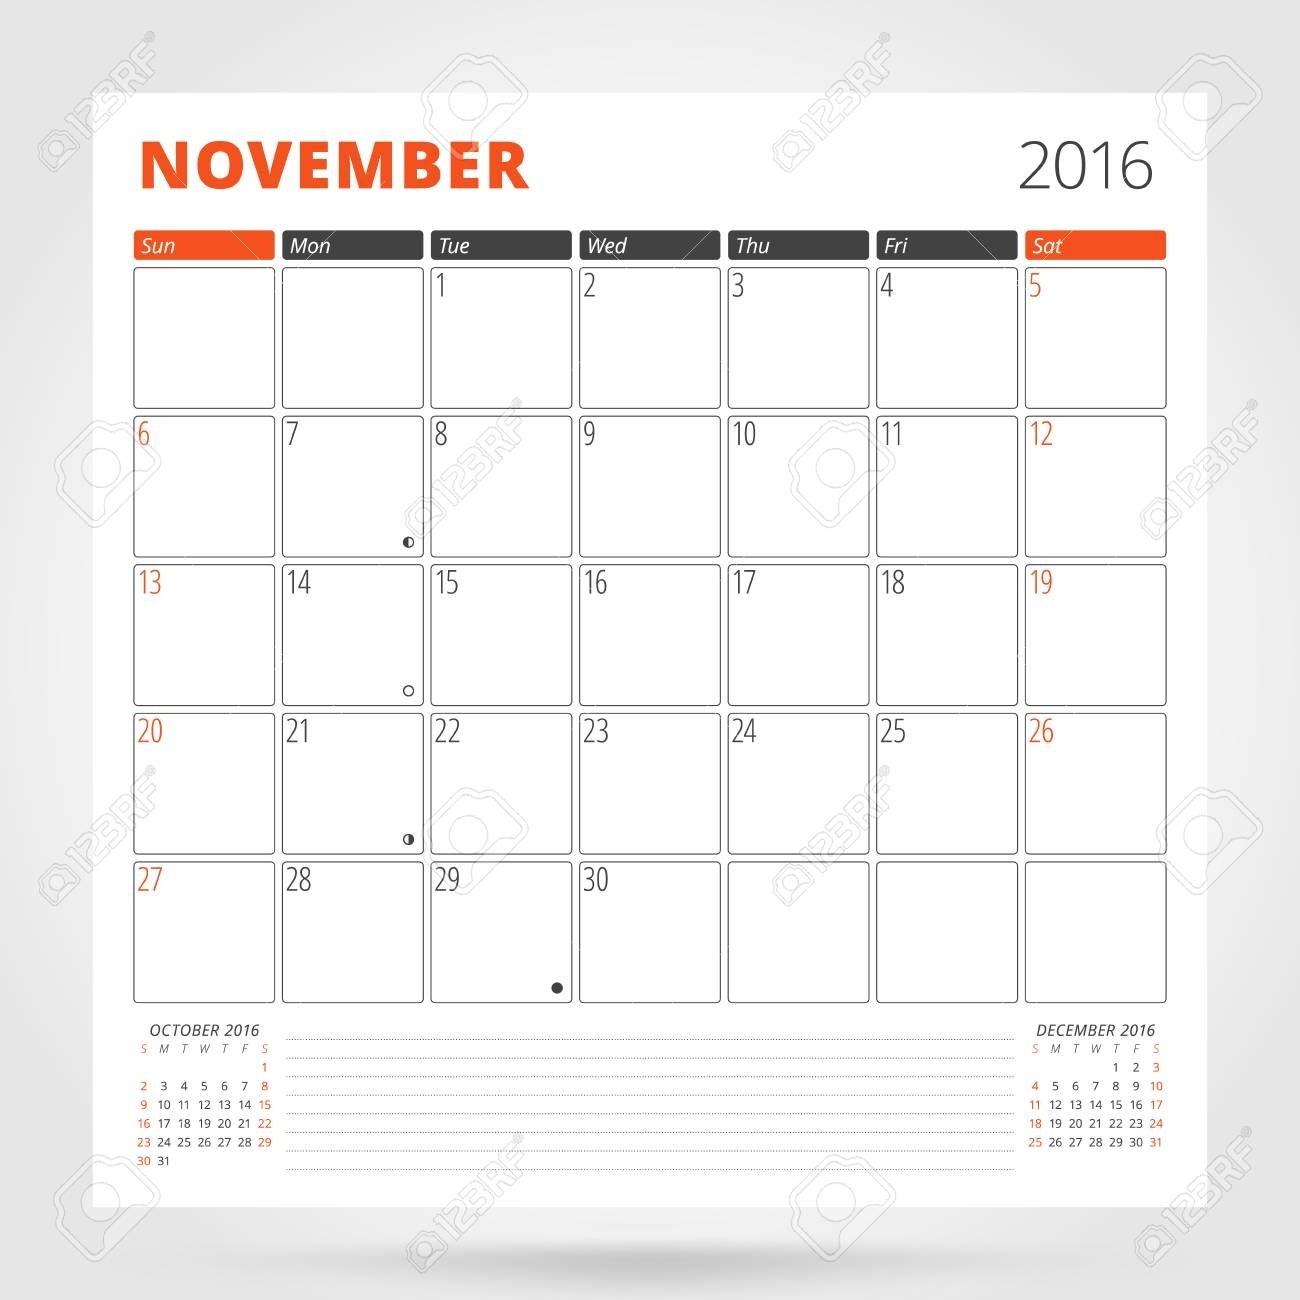 Calendar Planner For 2016 Year. November. Design Print Template..